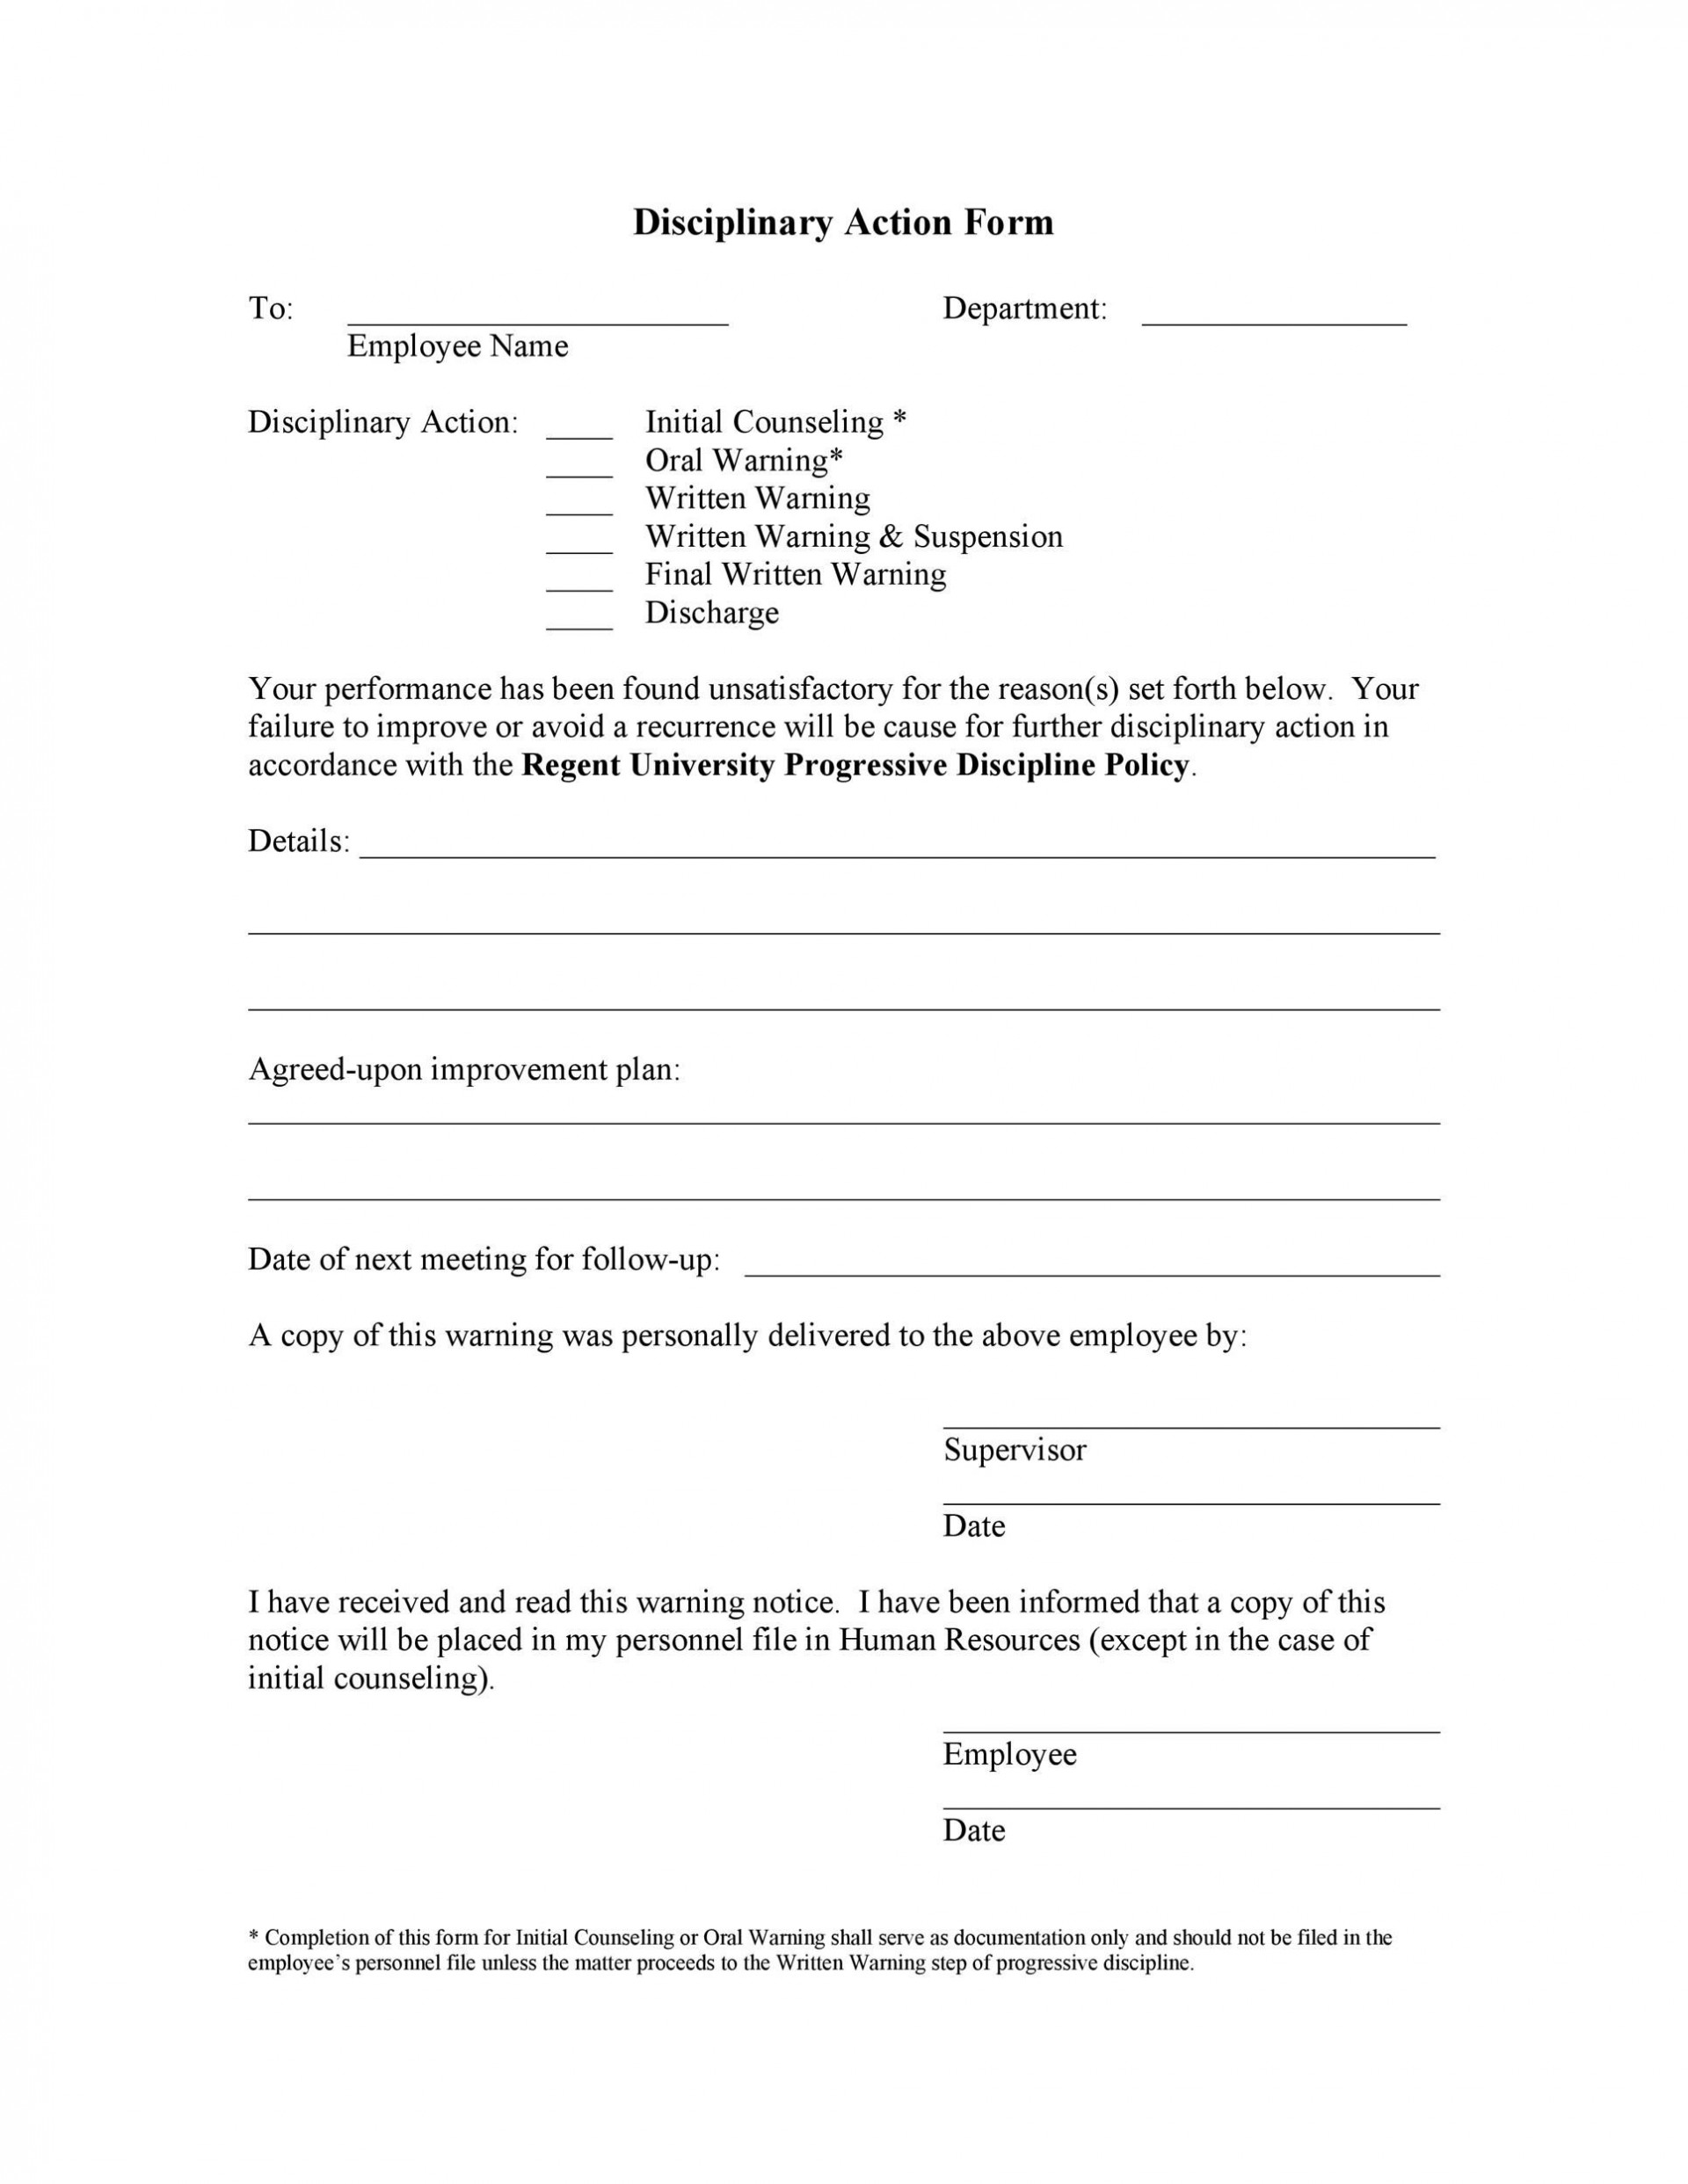 003 Exceptional Employee Discipline Form Template Concept  Free Disciplinary Letter Action1920